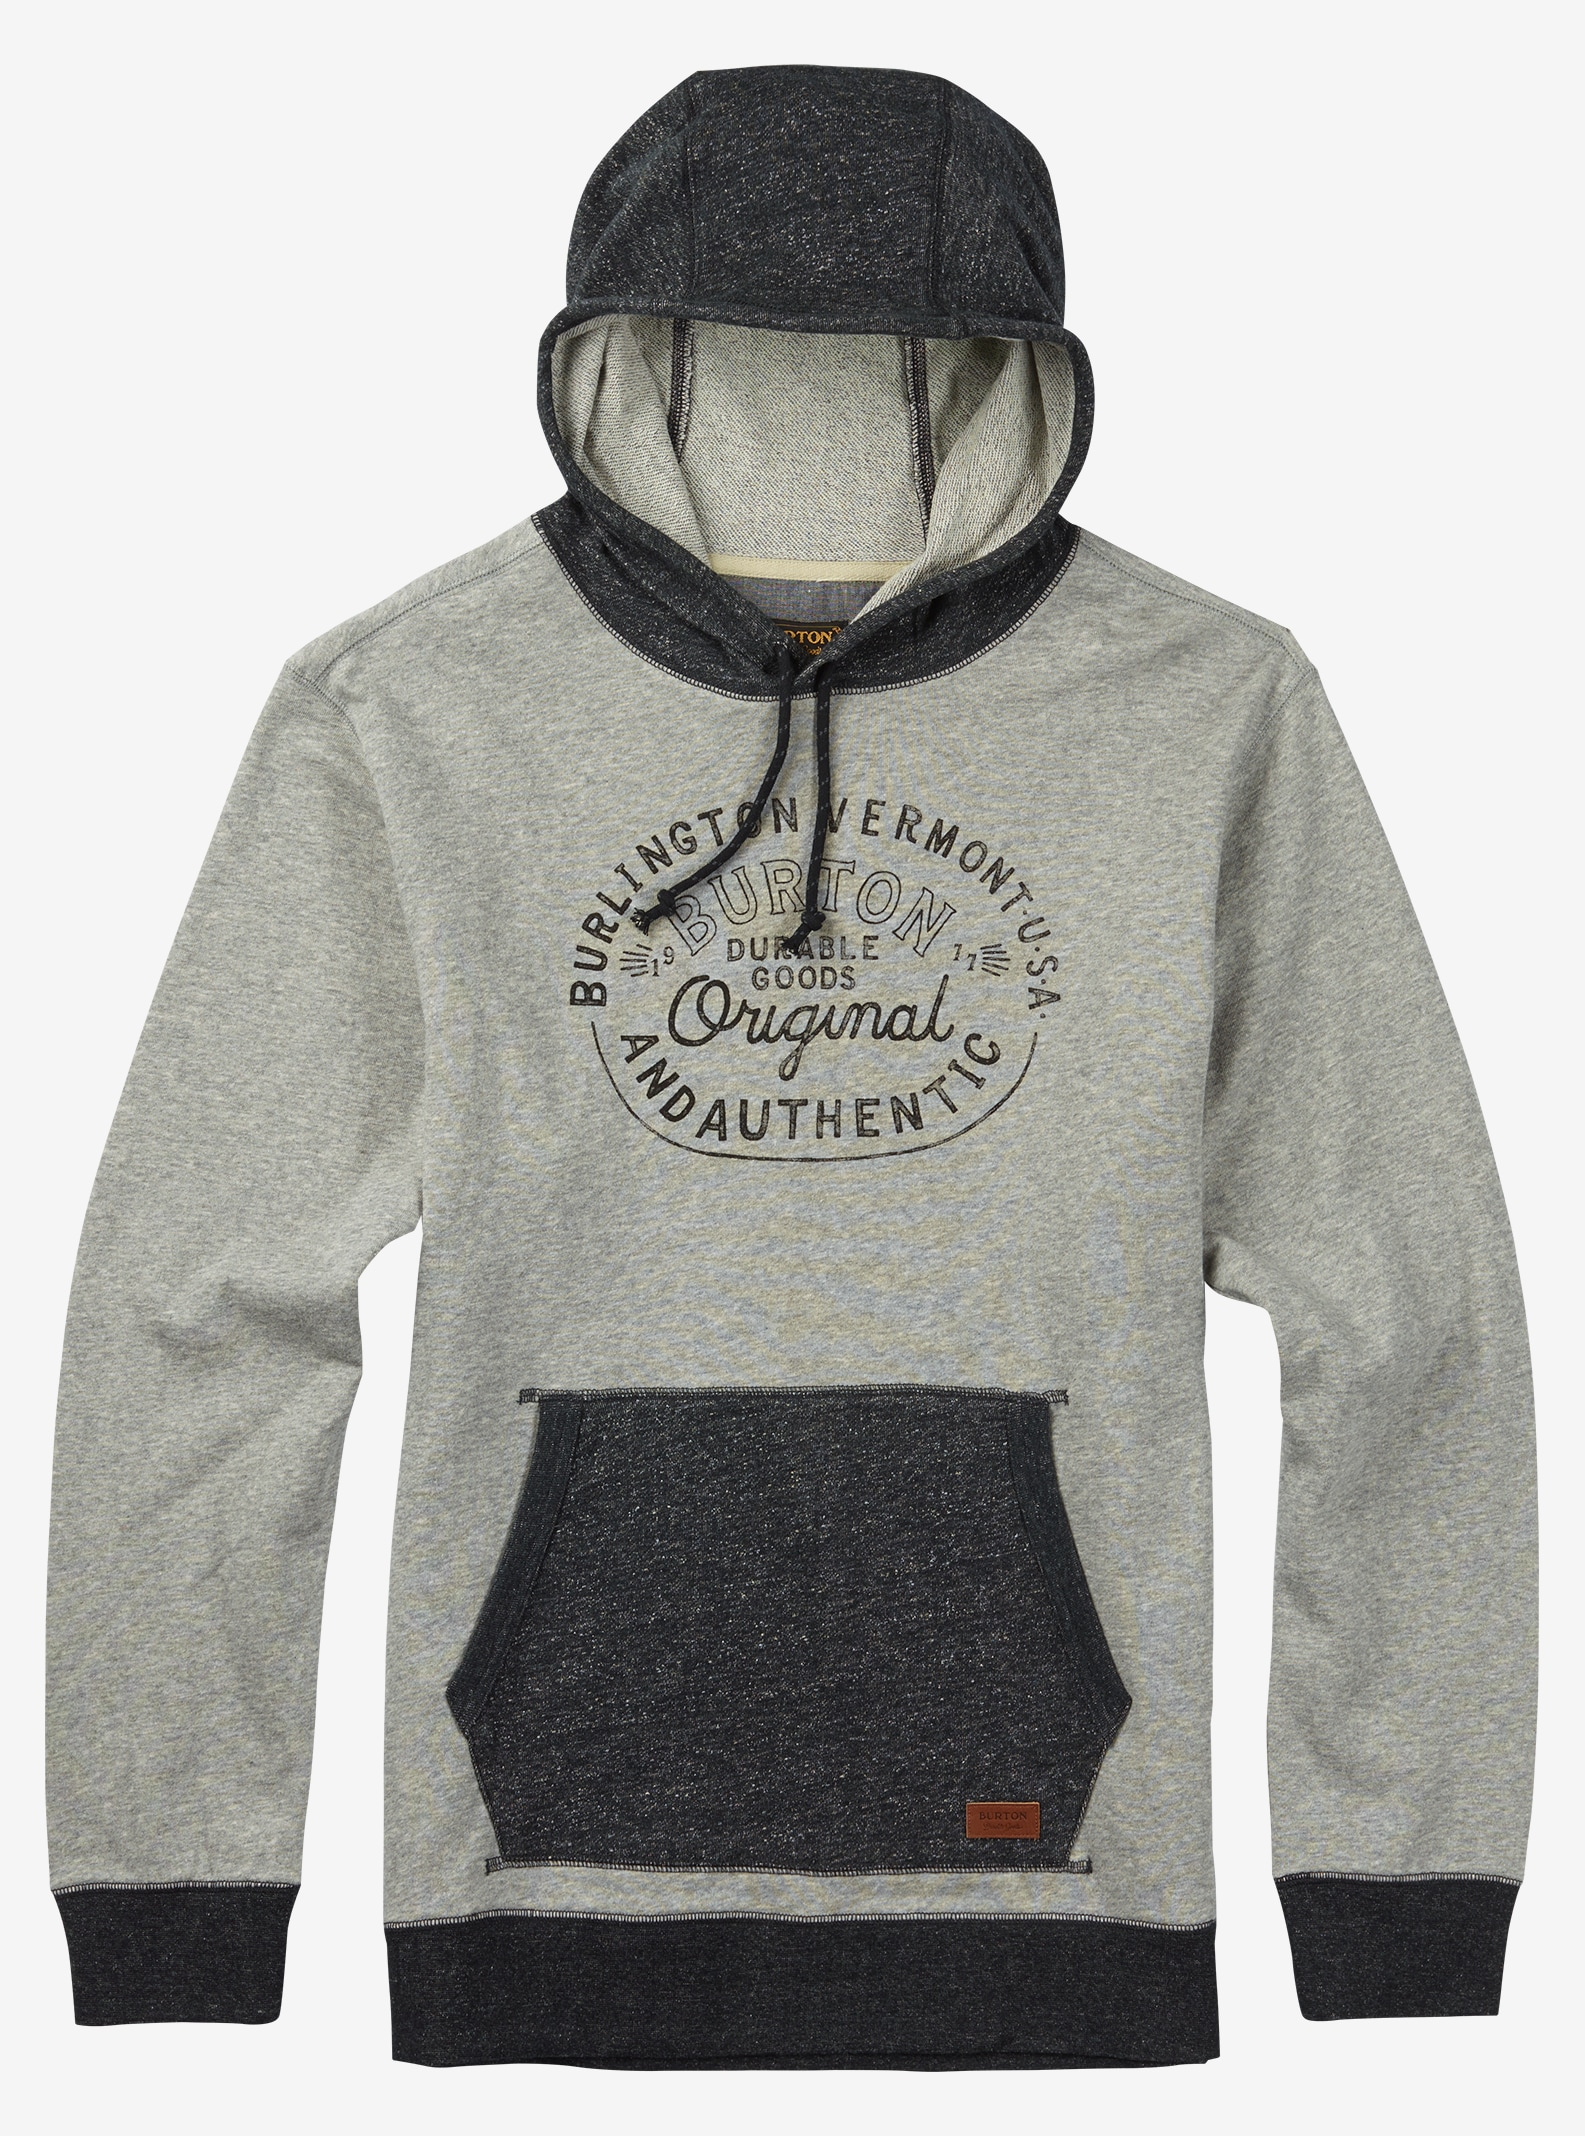 Burton Manual Pullover shown in Gray Heather